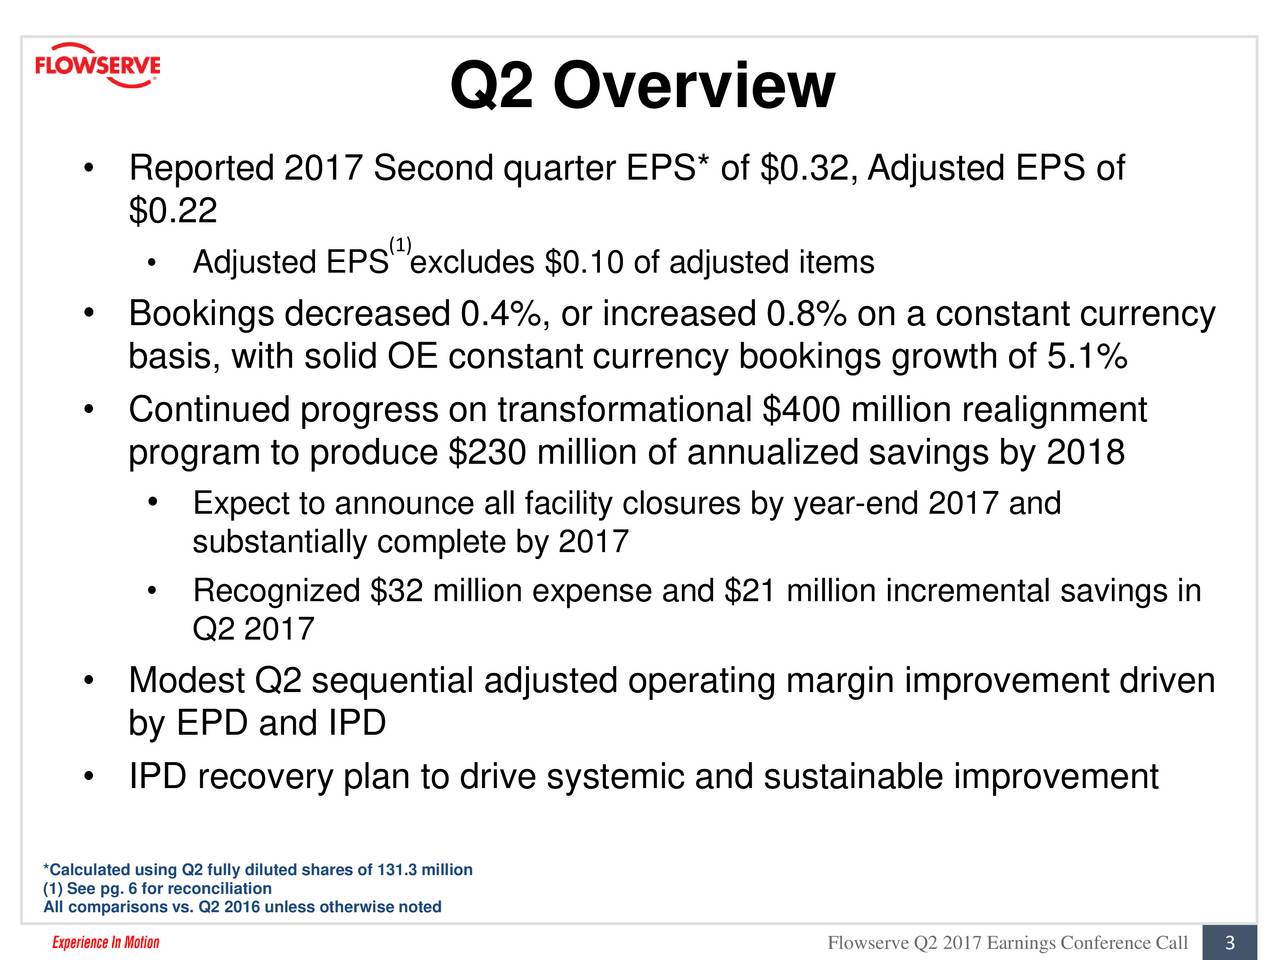 Reported 2017 Second quarter EPS* of $0.32, Adjusted EPS of $0.22 (1) Adjusted EPS excludes $0.10 of adjusted items Bookings decreased 0.4%, or increased 0.8% on a constant currency basis, with solid OE constant currency bookings growth of 5.1% Continued progress on transformational $400 million realignment program to produce $230 million of annualized savings by 2018 Expect to announce all facility closures by year-end 2017 and substantially complete by 2017 Recognized $32 million expense and $21 million incremental savings in Q2 2017 Modest Q2 sequential adjusted operating margin improvement driven by EPD and IPD IPD recovery plan to drive systemic and sustainable improvement *Calculated using Q2 fully diluted shares of 131.3 million (1) See pg. 6 for reconciliation All comparisons vs. Q2 2016 unless otherwise noted